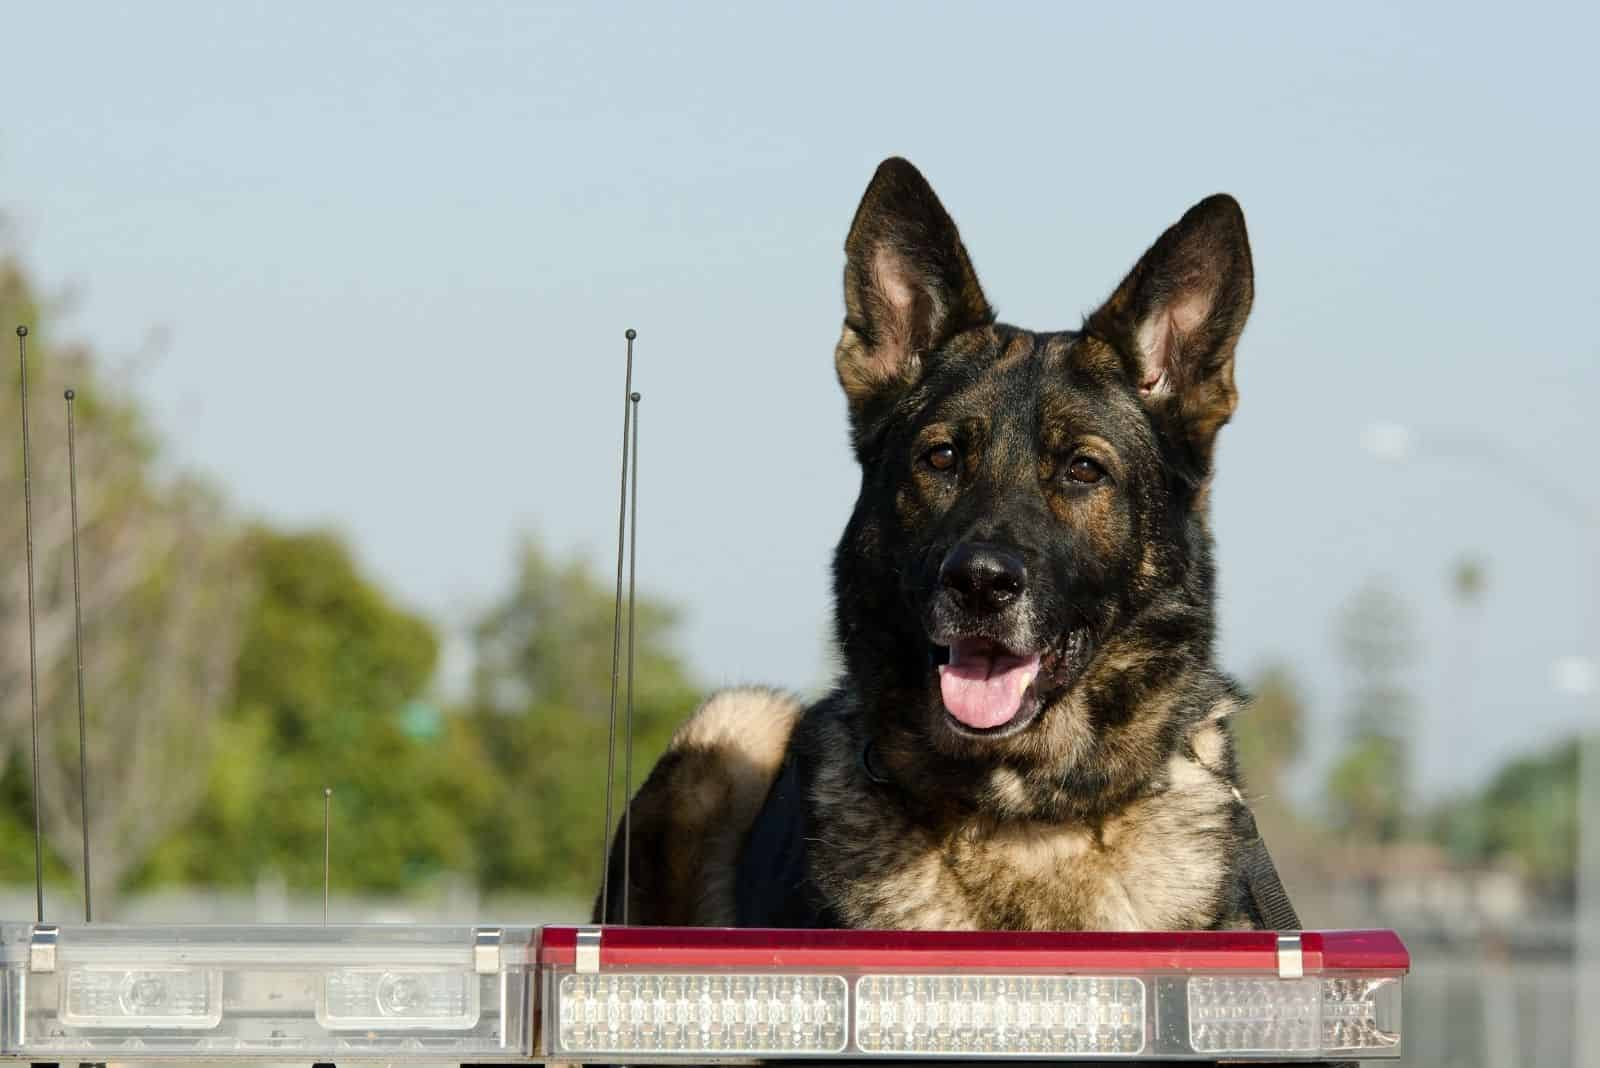 police dog sitting on top of a patrol car during his shift